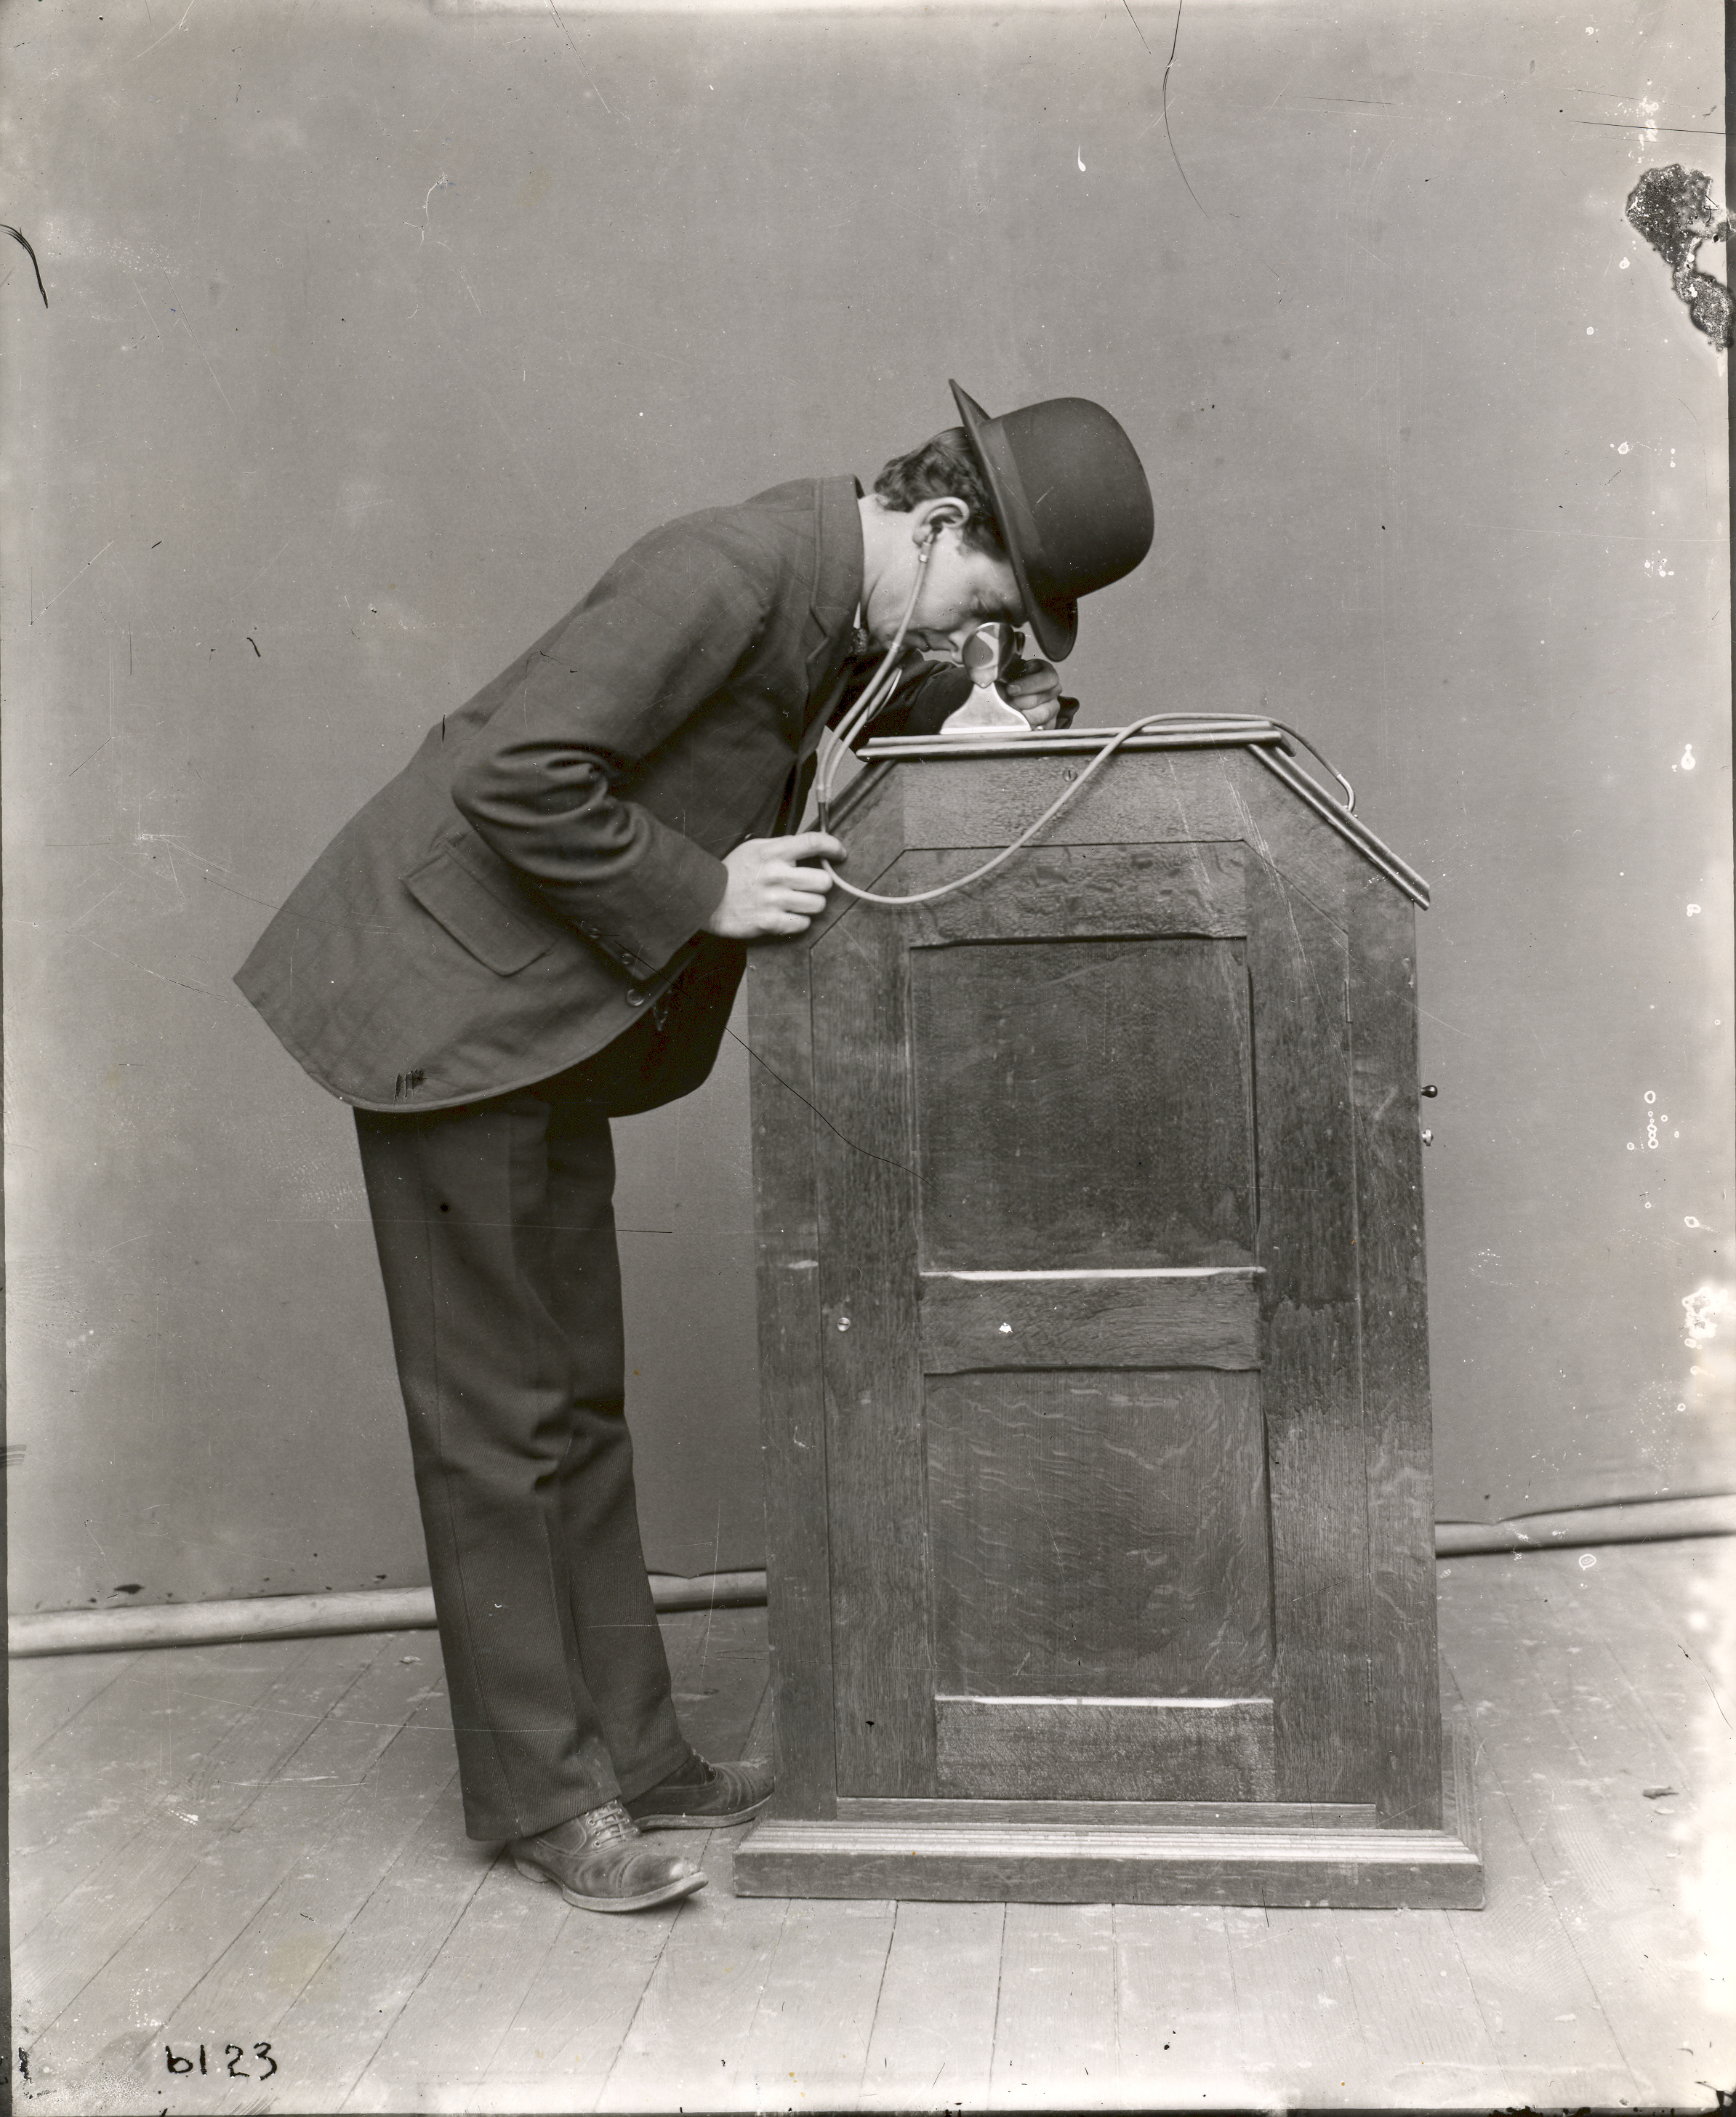 developement of the kinetoscope The position of the kinetoscope in film history is central and undisputed indicative of its importance is the detailed attention american scholars have given to examining its history however, the kinetoscope's development in britain has not been well documented and much current information about it is incomplete and out of date.